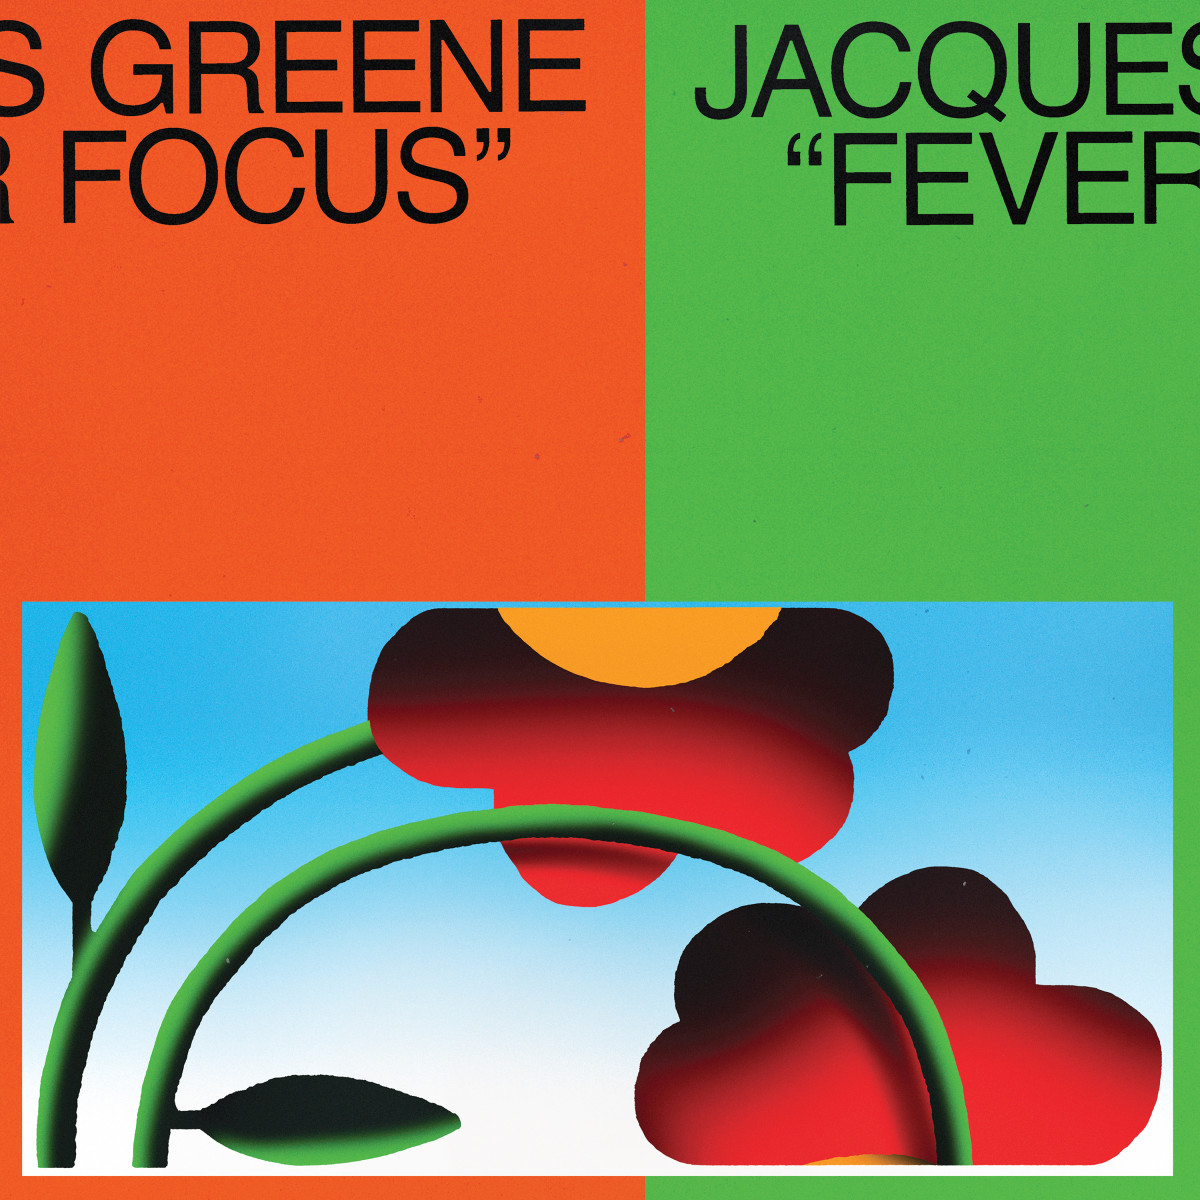 Jacques Greene Fever Focus